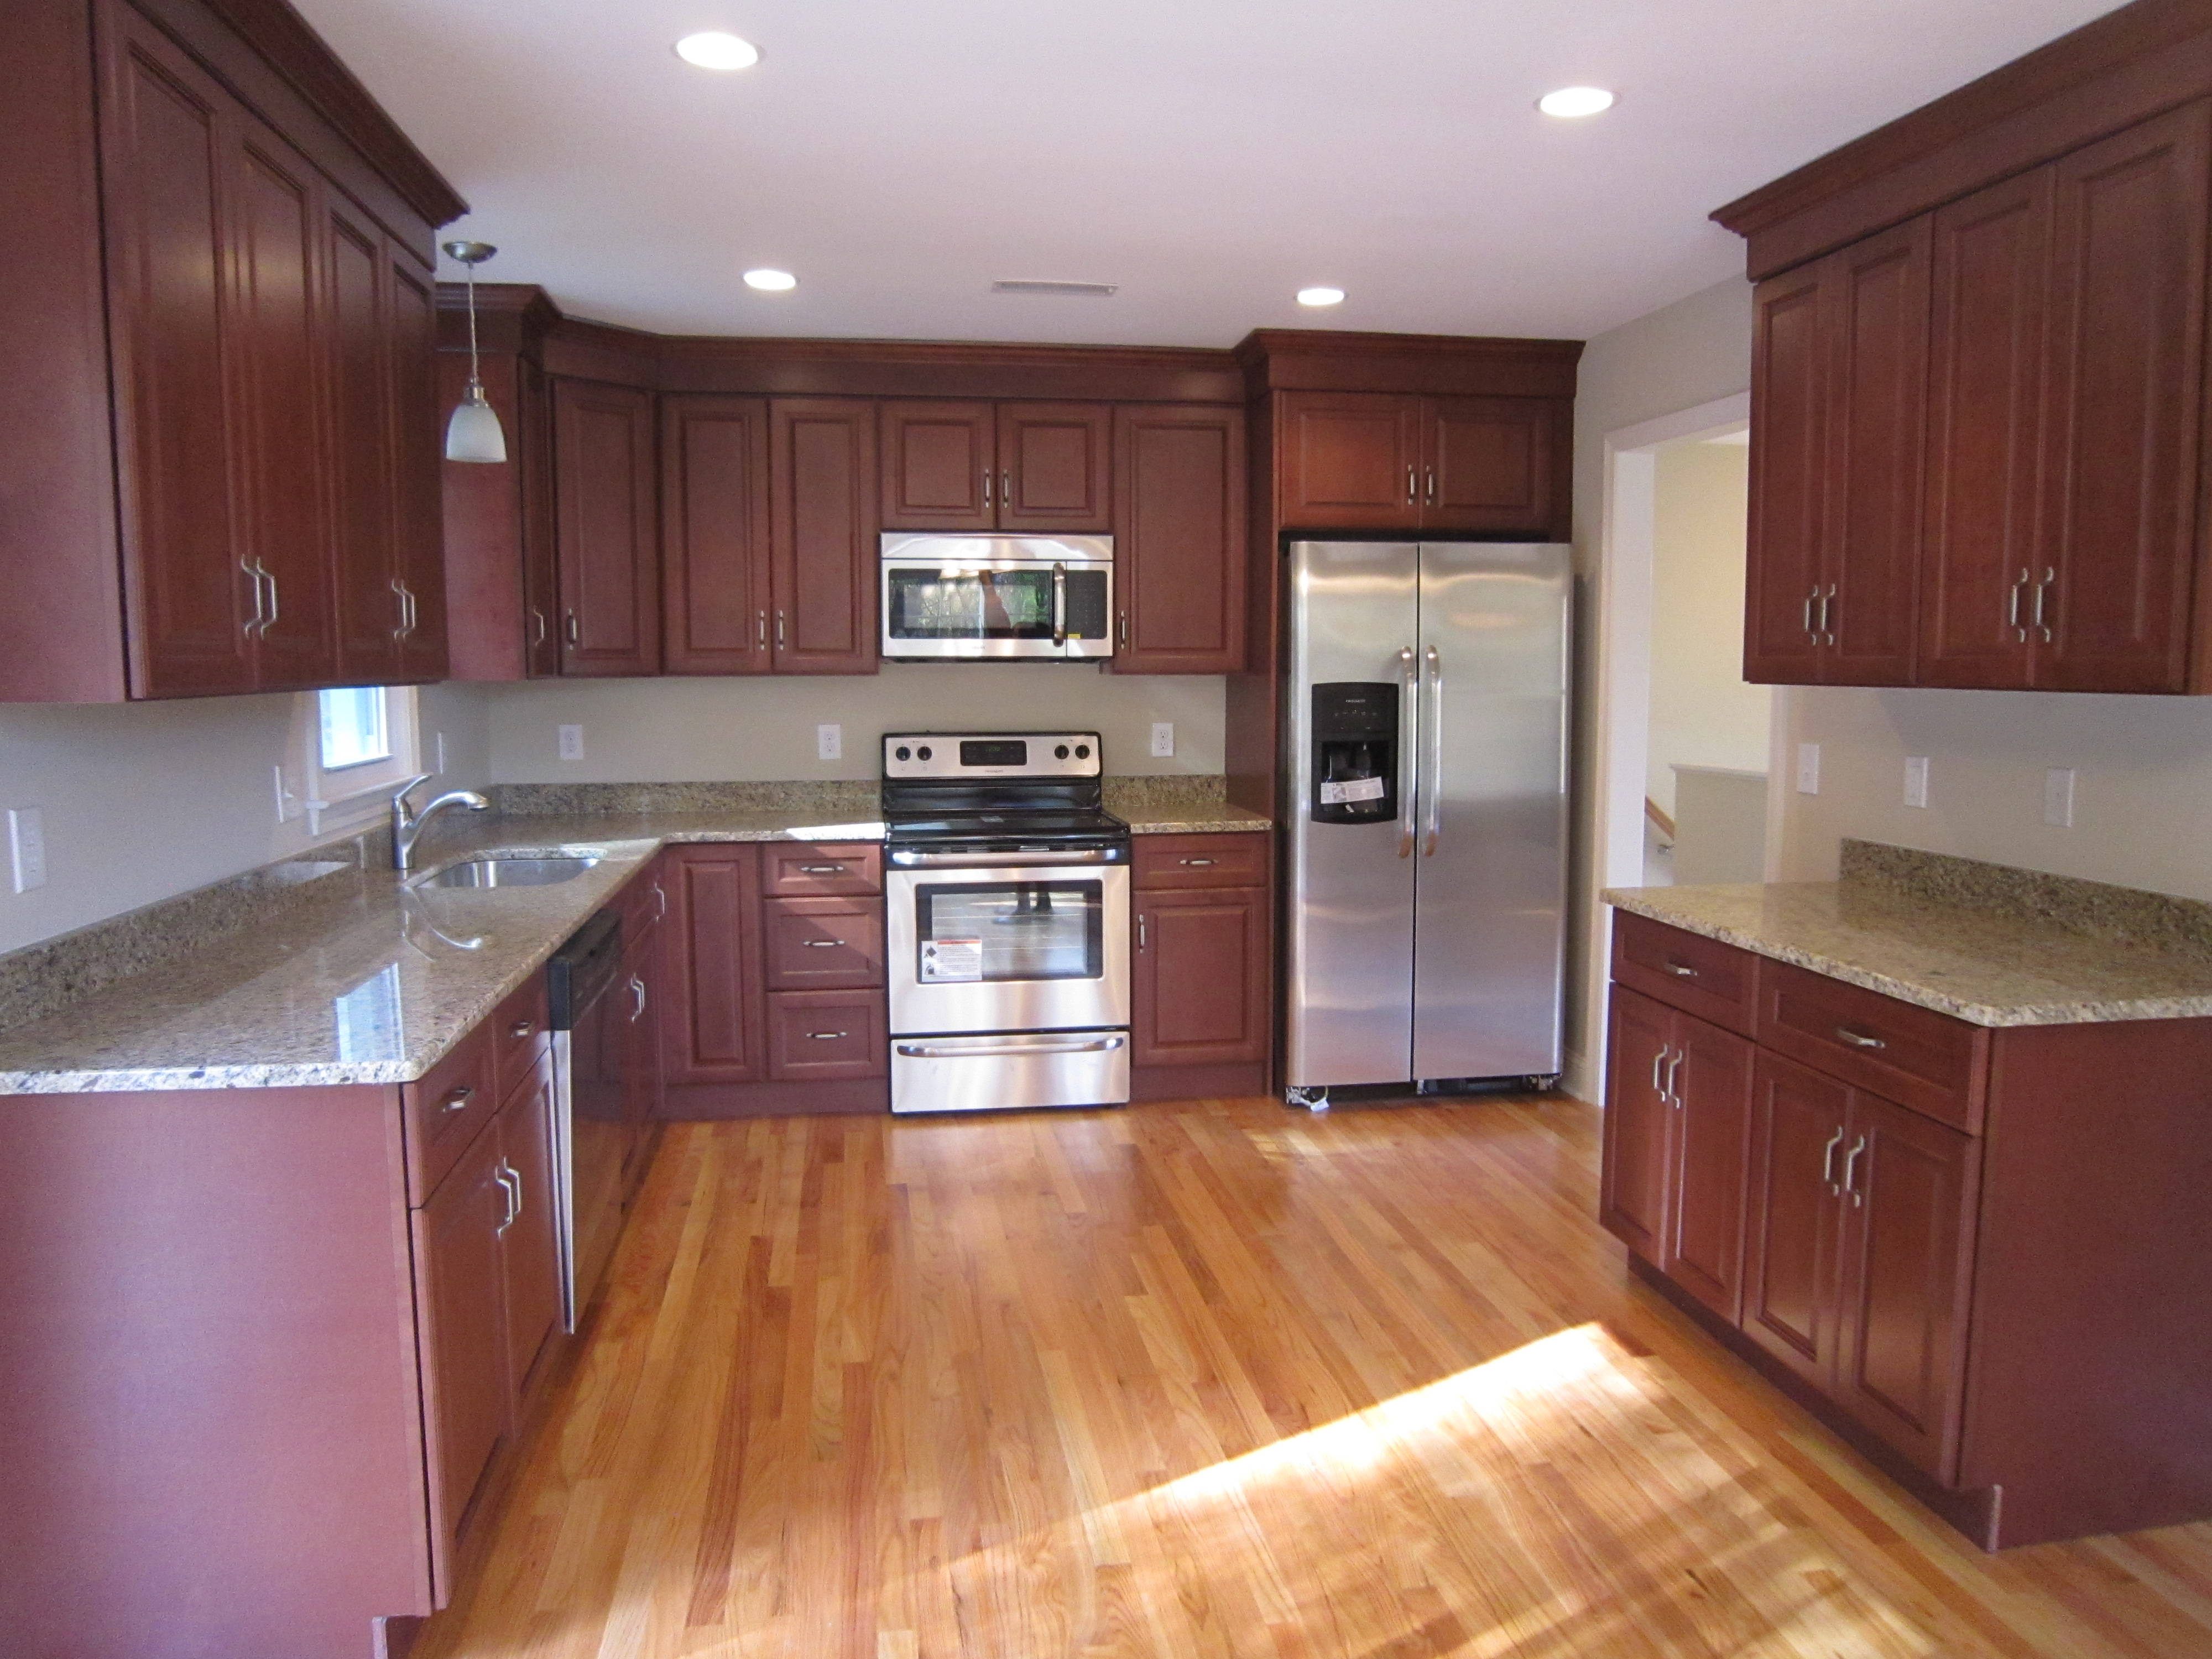 danbury real estate sales ct real estate agents raised ranch kitchen remodel - Raised Ranch Kitchen Remodel